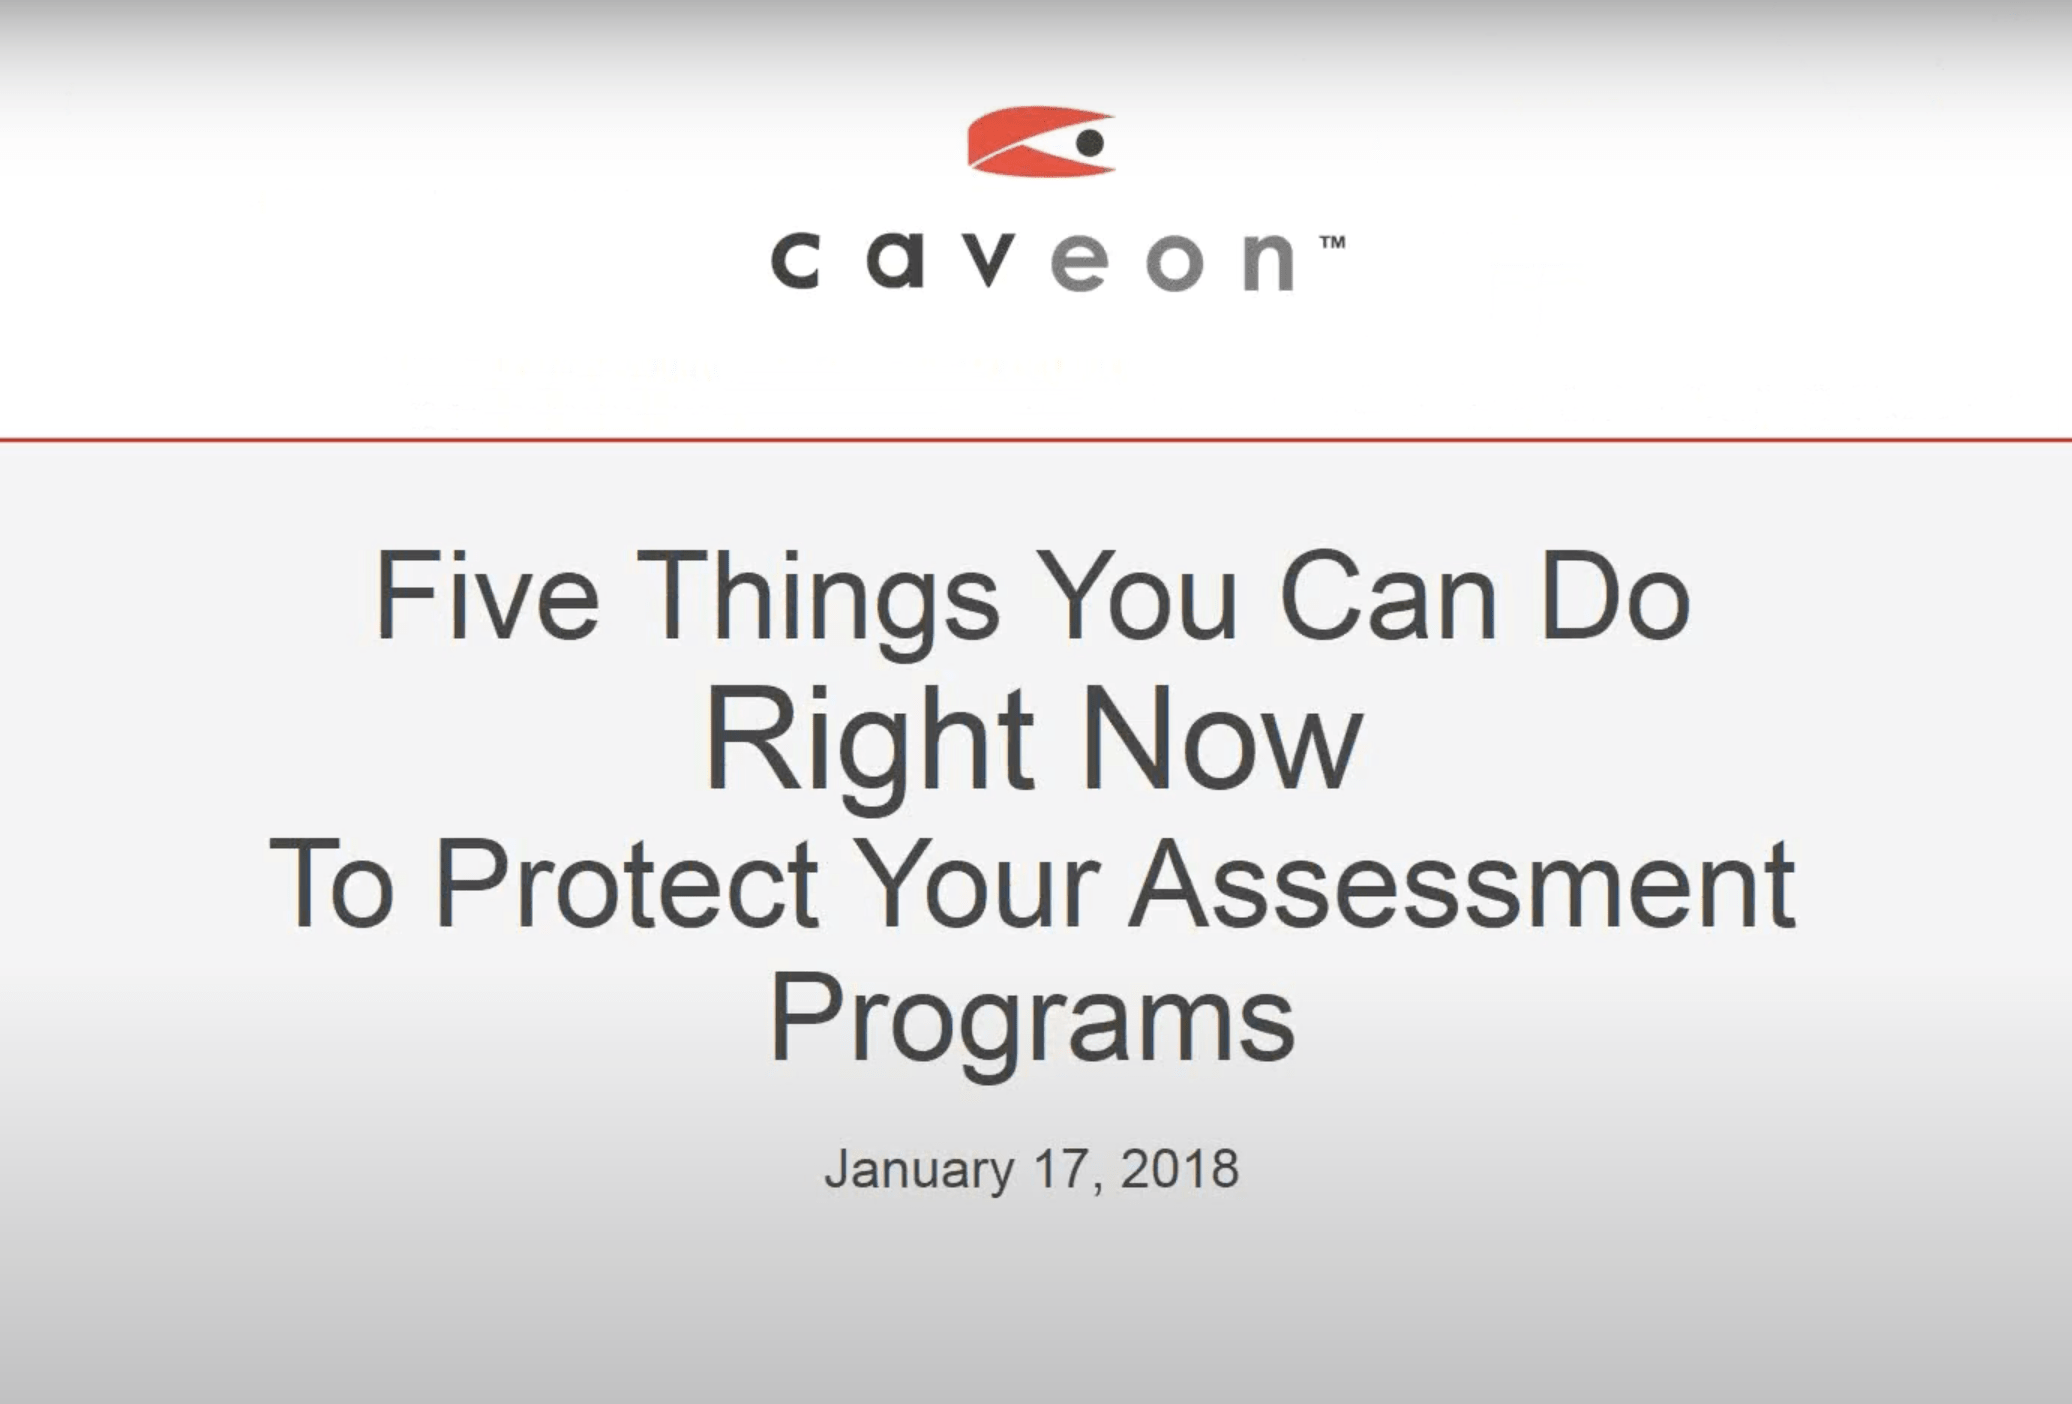 Five Things to Protect Your Assessment Program